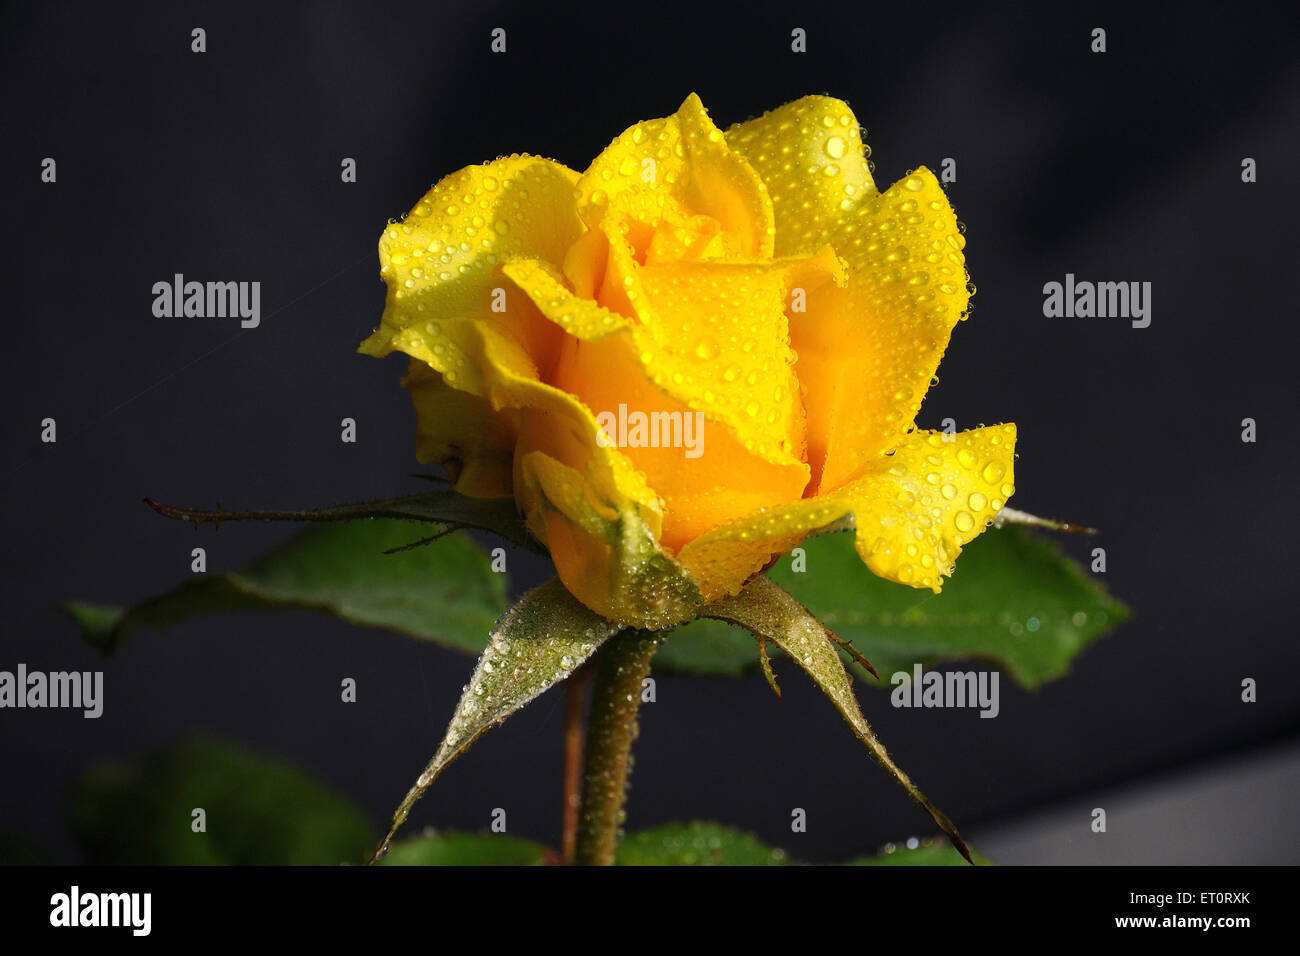 Dewdrops on rose - Stock Image